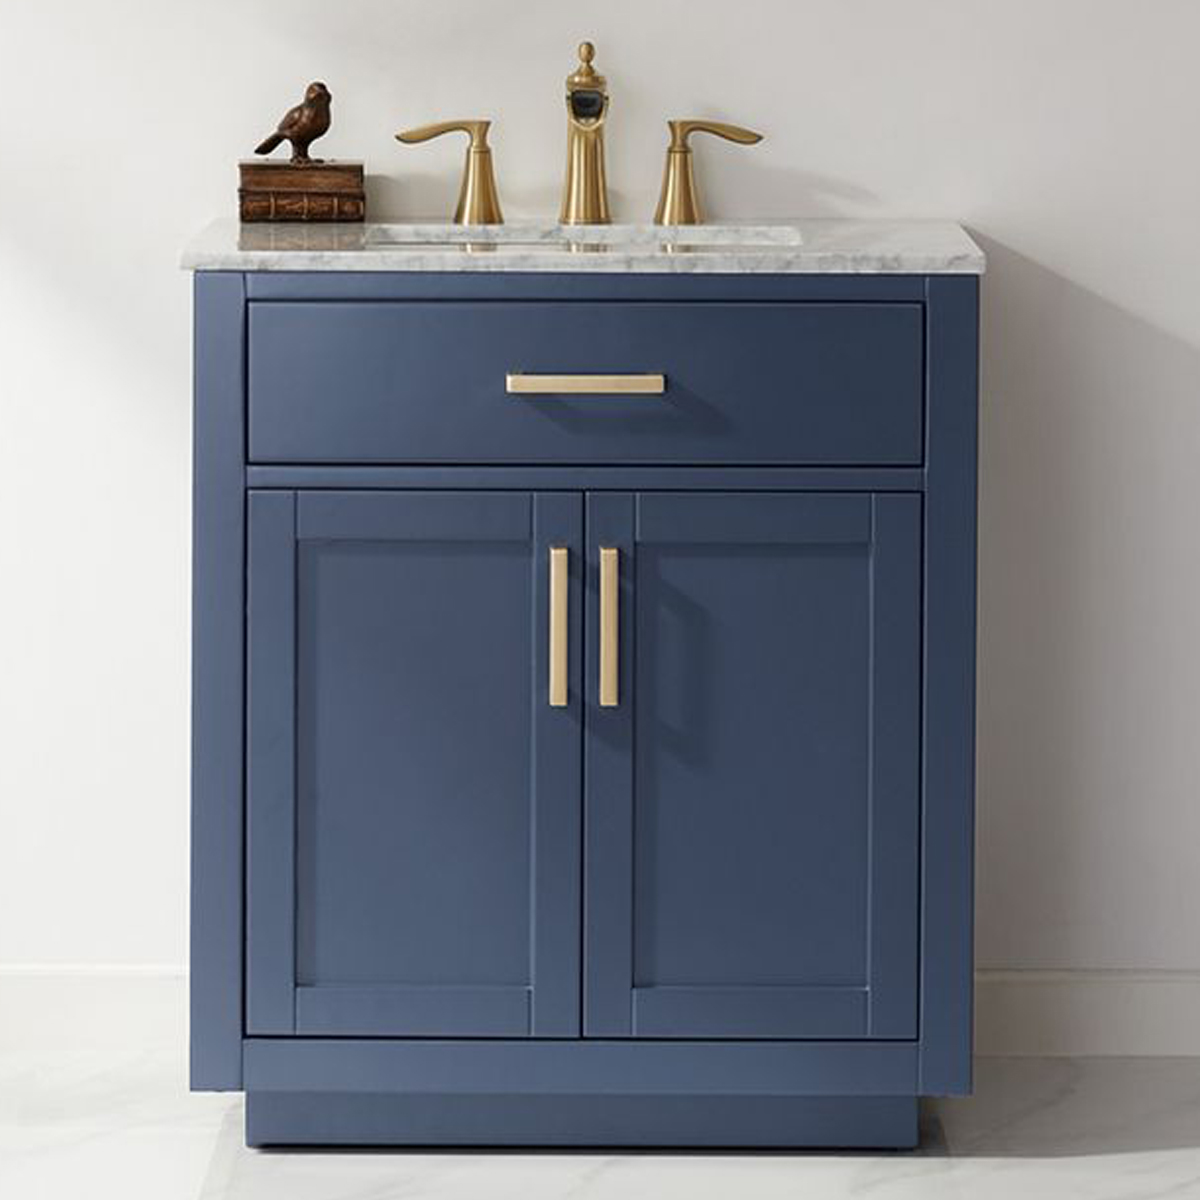 """Issac Edwards Collection 30"""" Single Bathroom Vanity Set in RoyalBlue and Carrara White Marble Countertop without Mirror"""